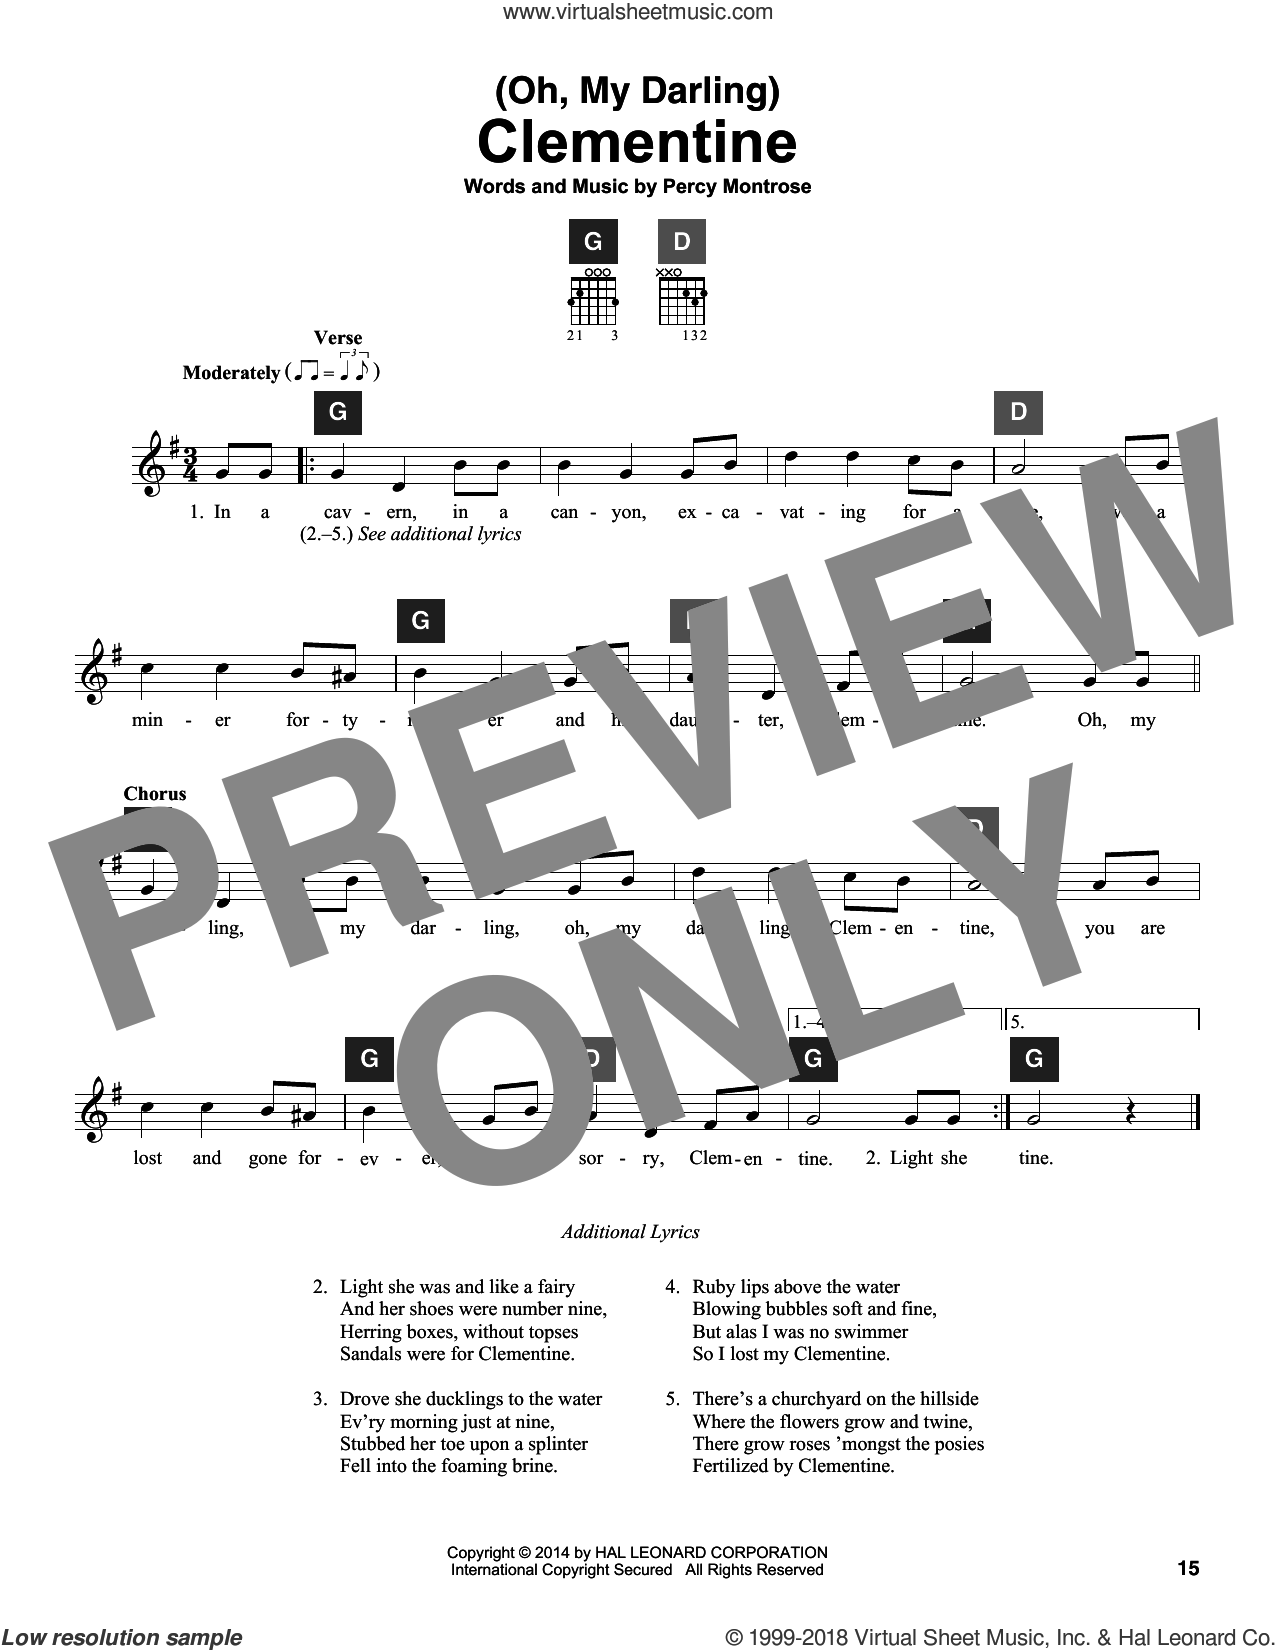 (Oh, My Darling) Clementine sheet music for guitar solo (ChordBuddy system) by Percy Montrose and Travis Perry, intermediate guitar (ChordBuddy system)